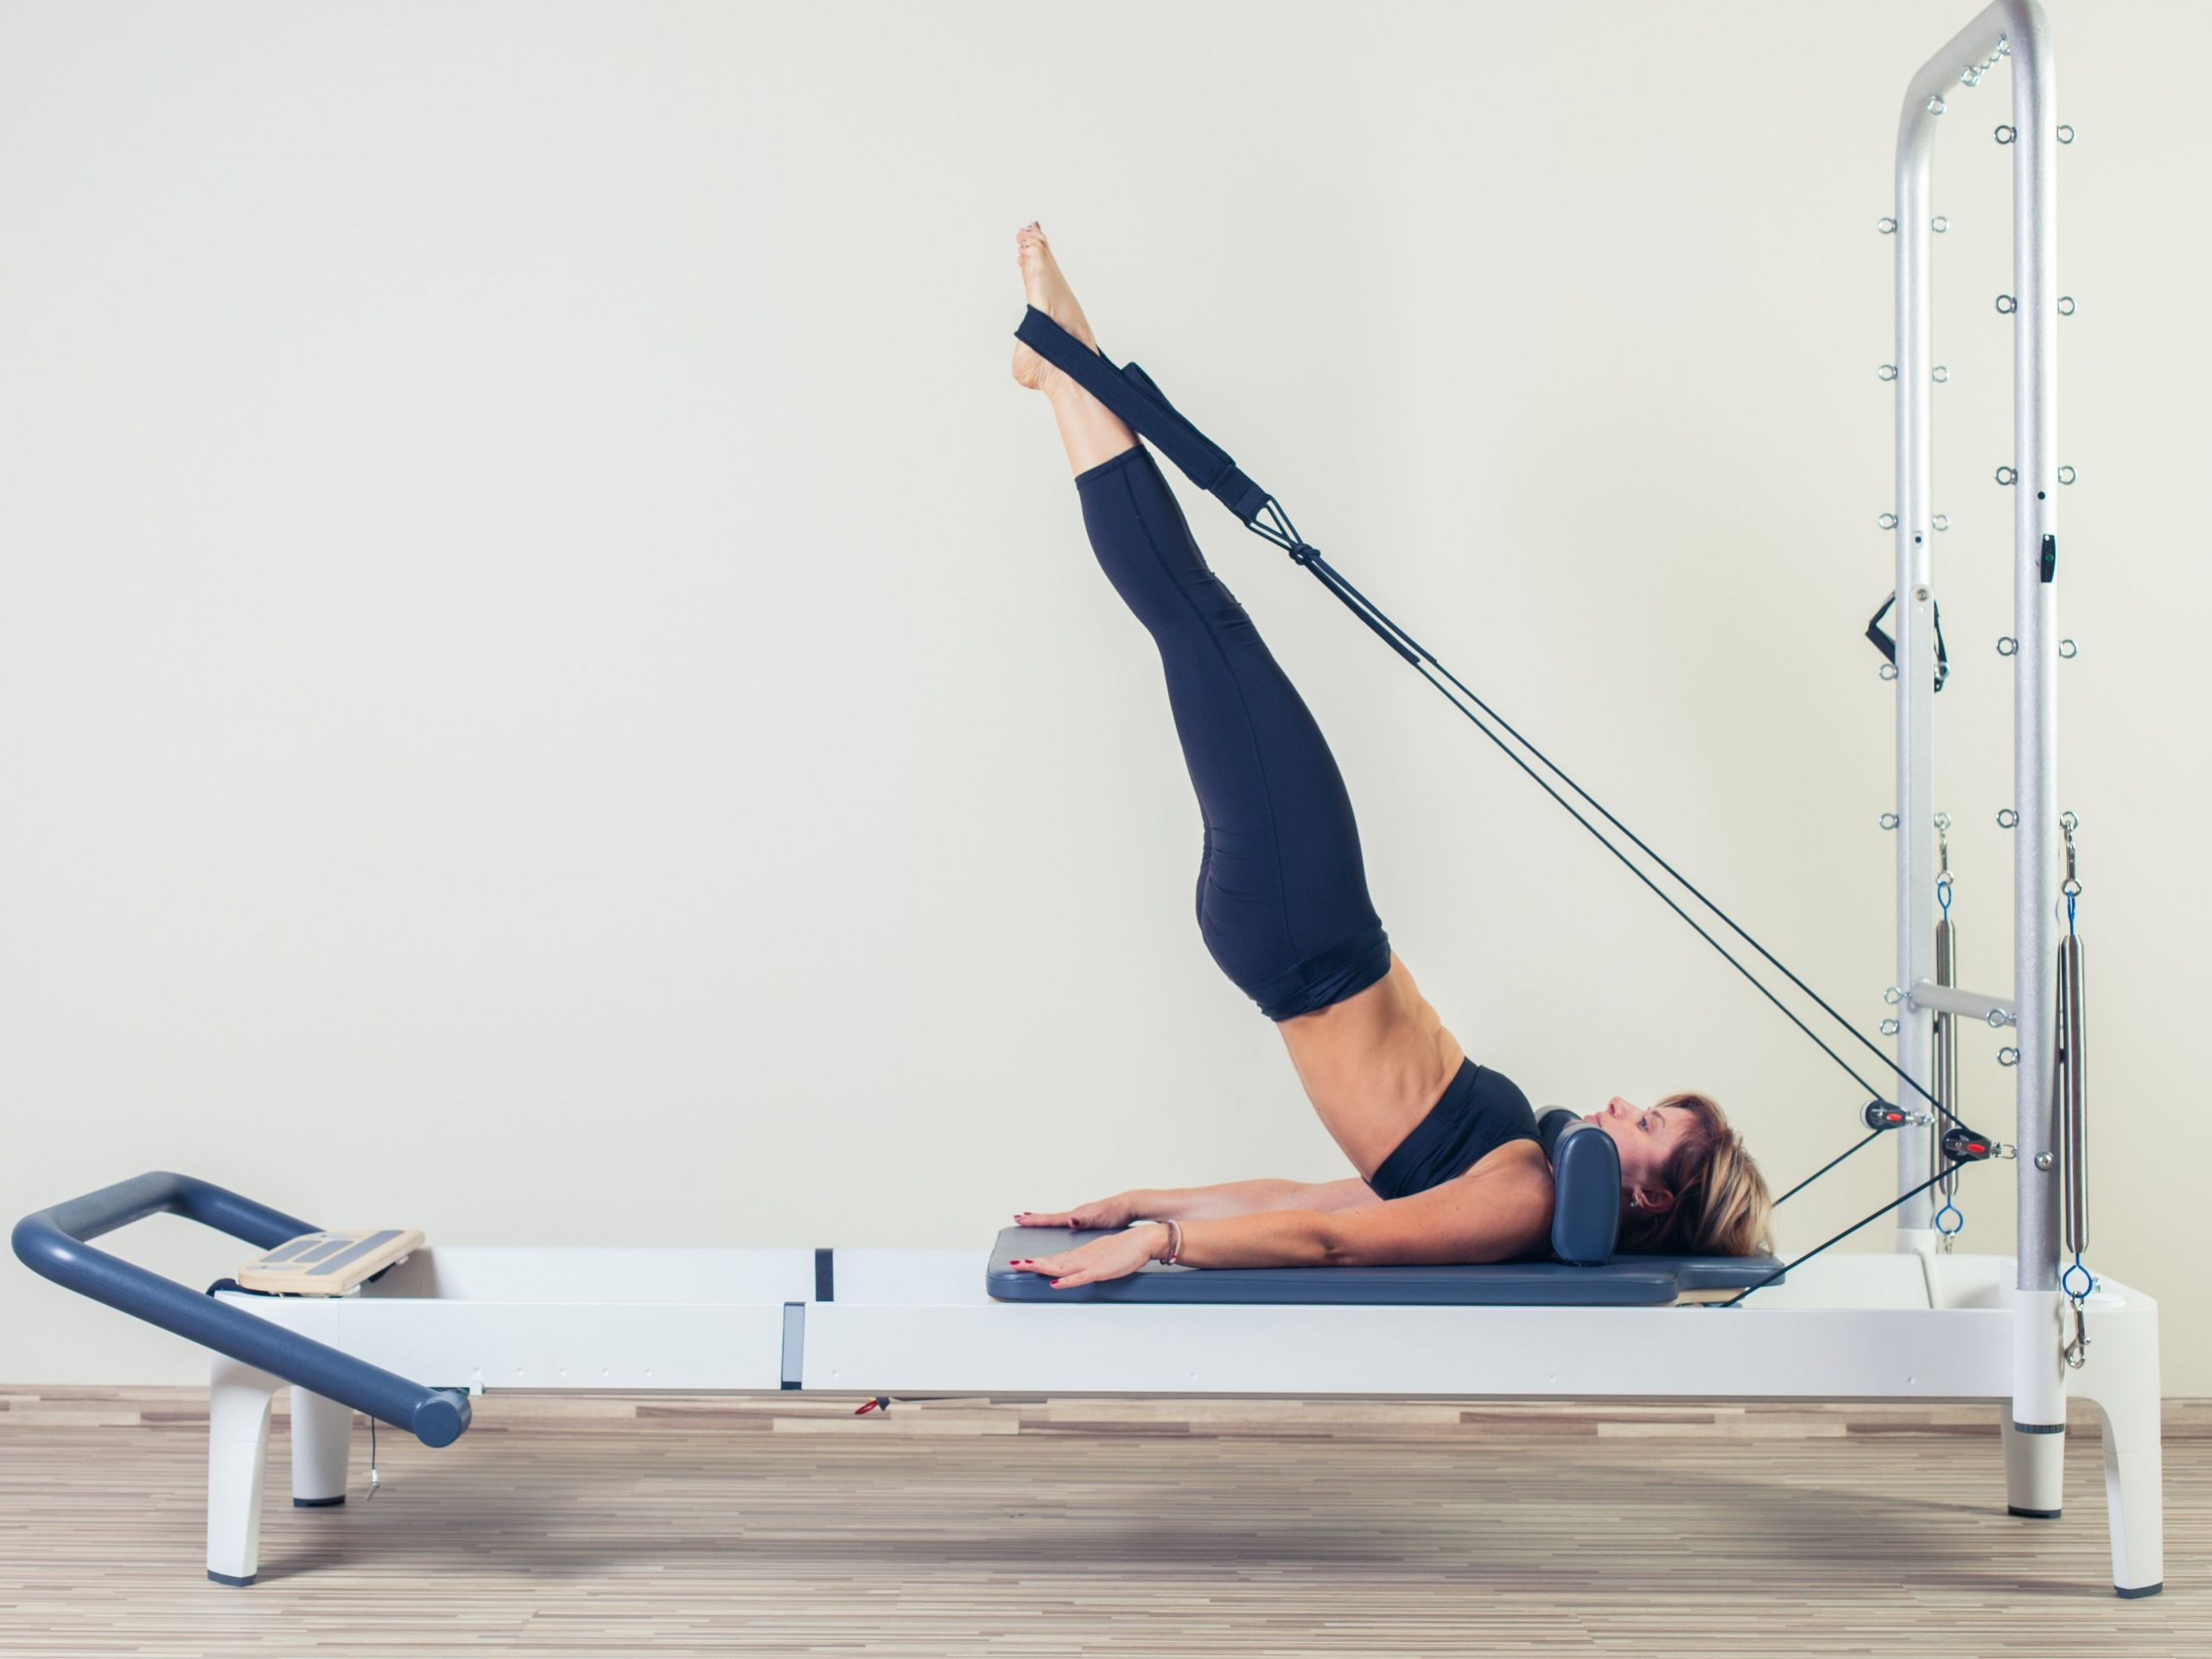 How Pilates Conditioning can improve sports performance